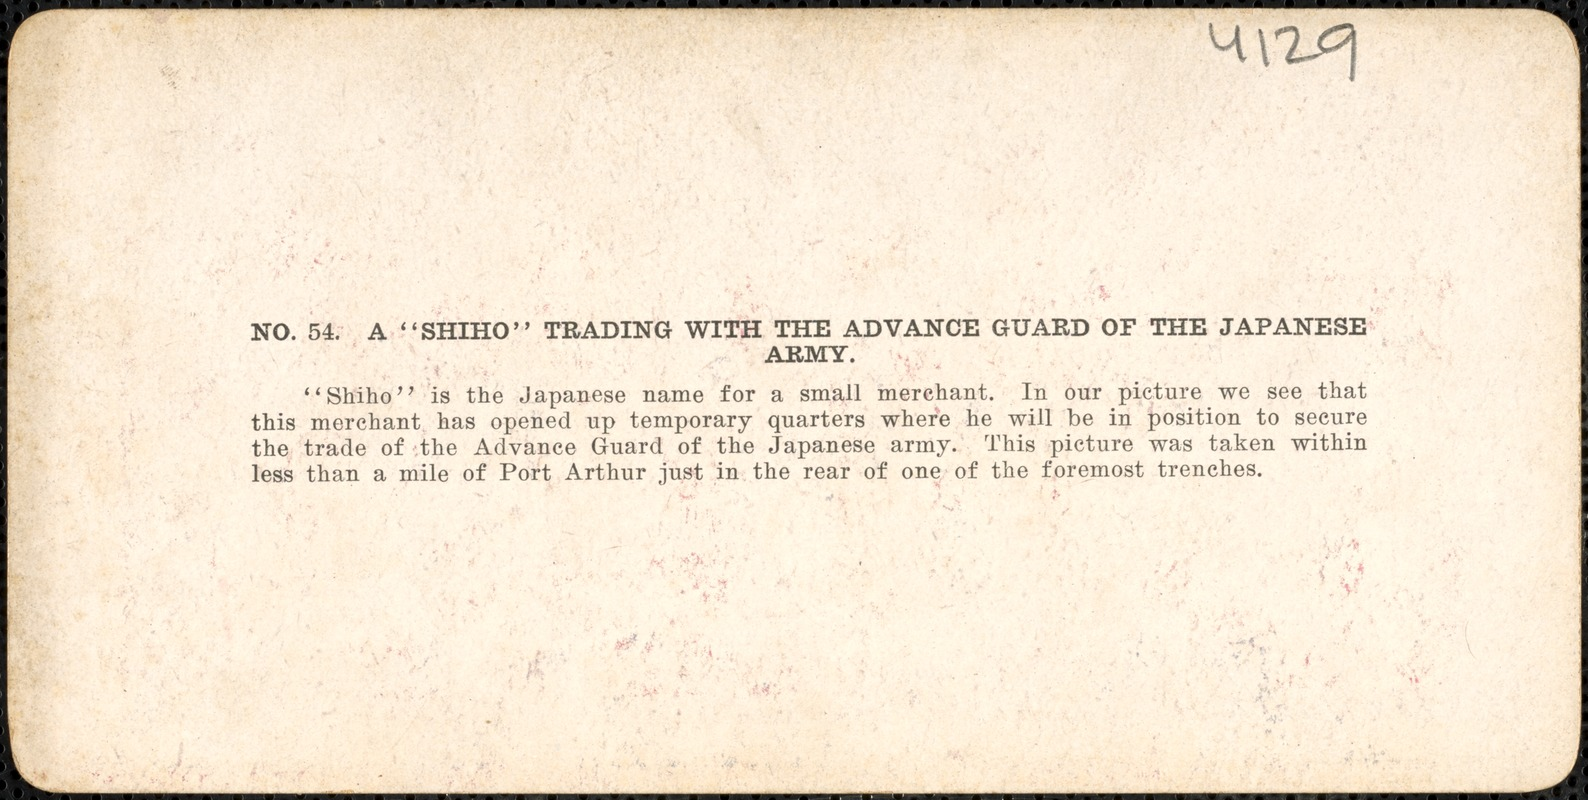 "A ""shiho"" trading with the advance guard of the Japanese army"